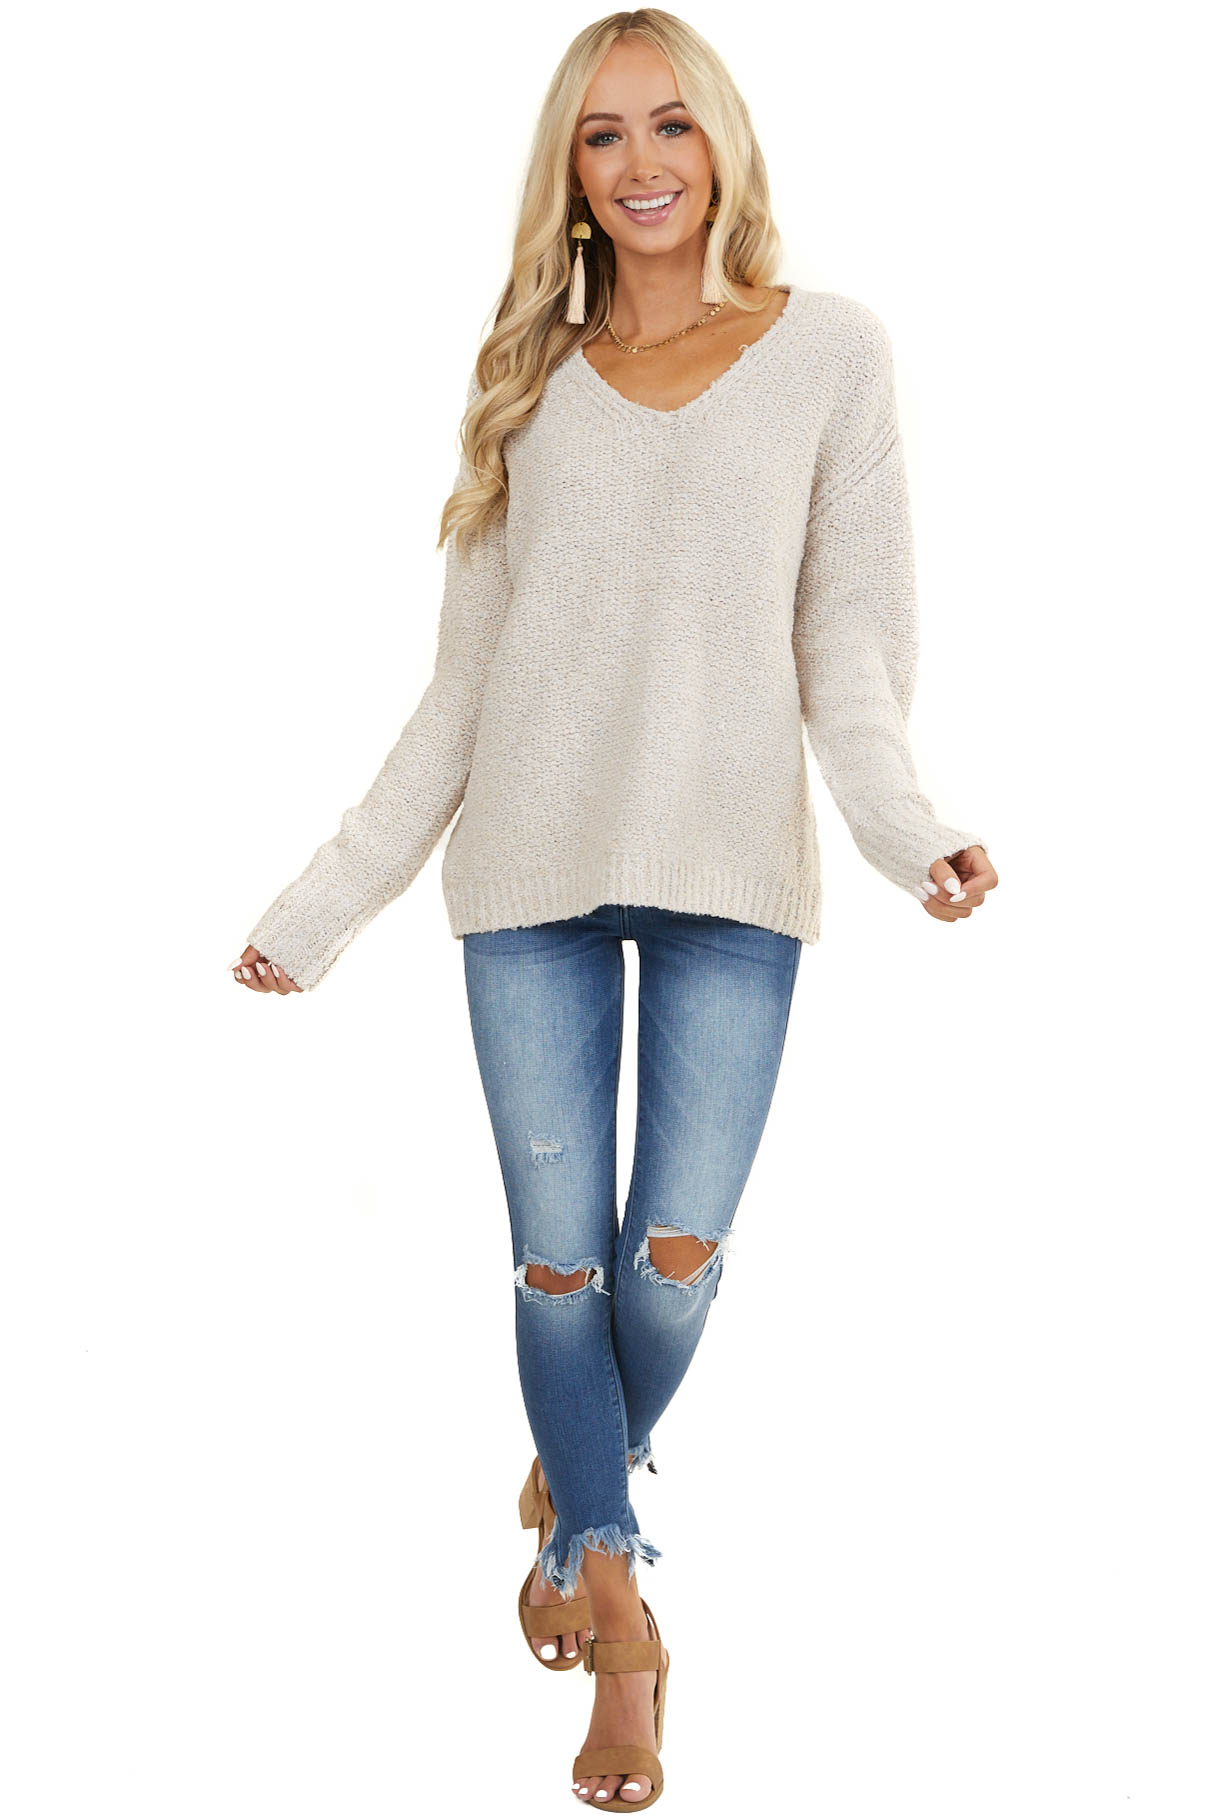 Heathered Oatmeal V Neckline Sweater with Long Sleeves